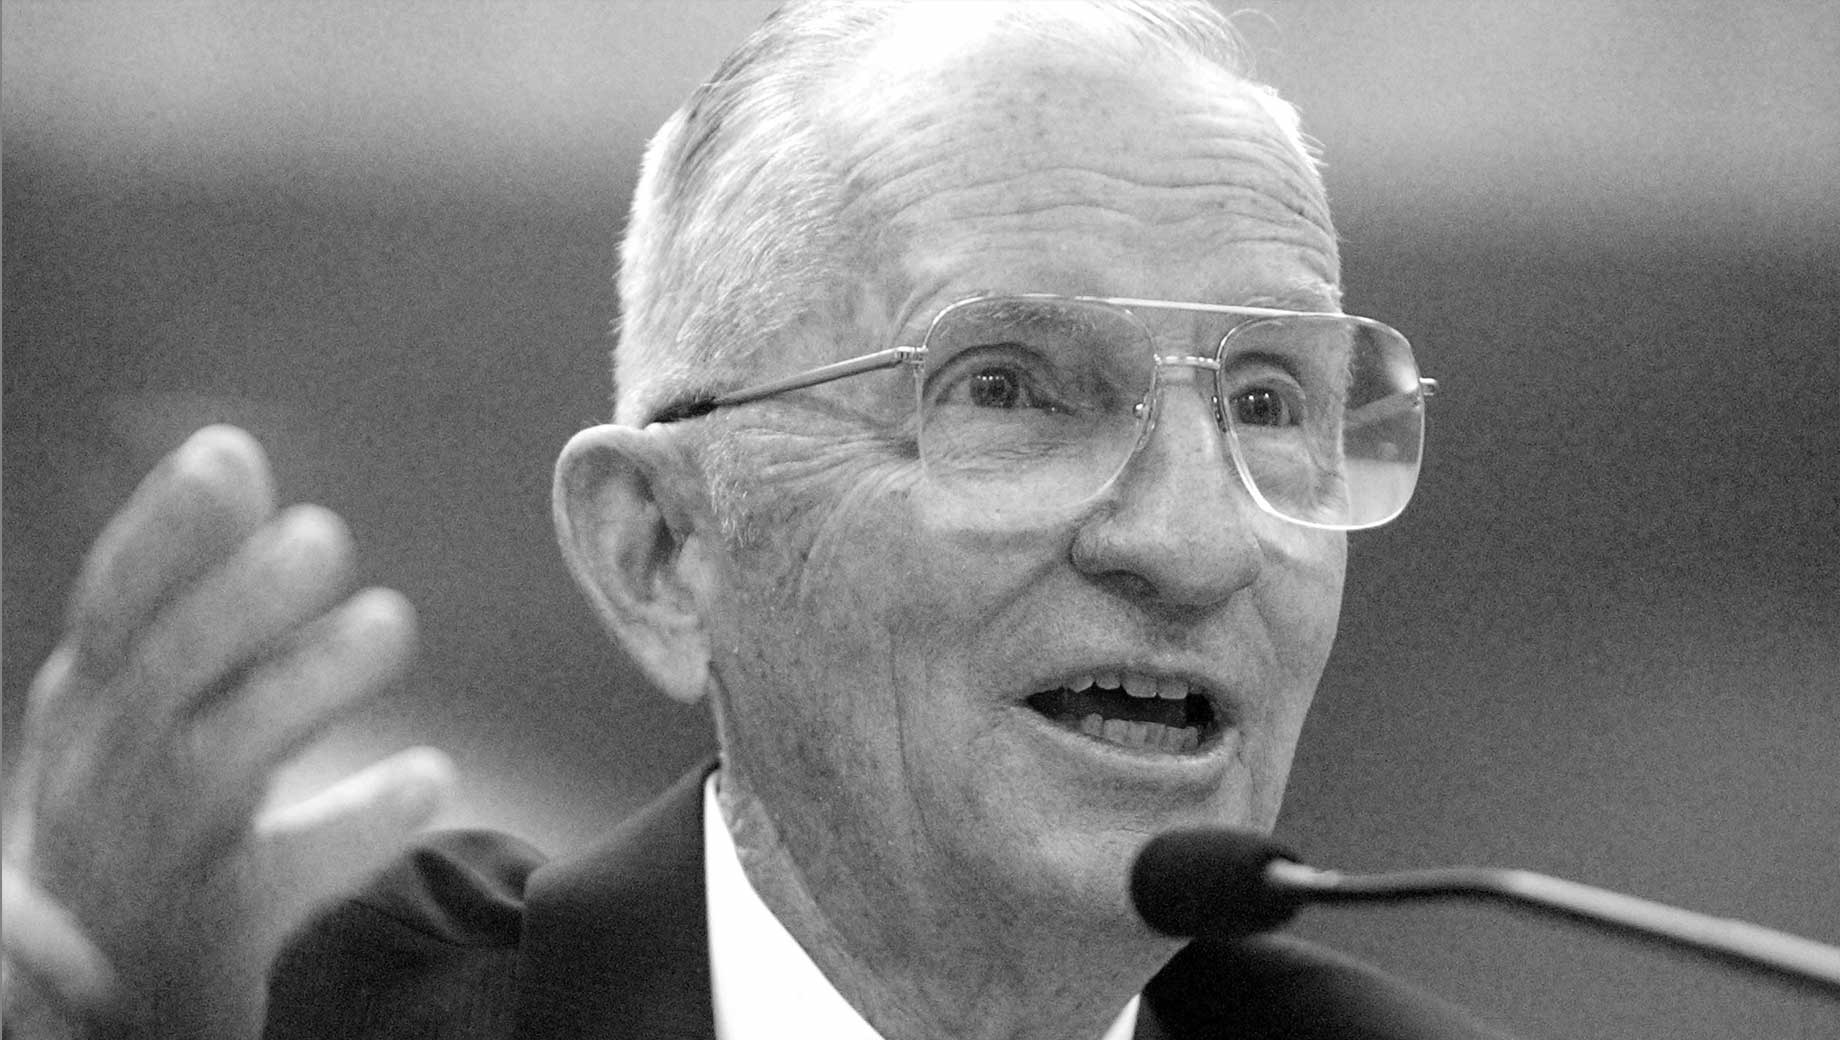 U.S. Voters Had Mixed Views of Ross Perot